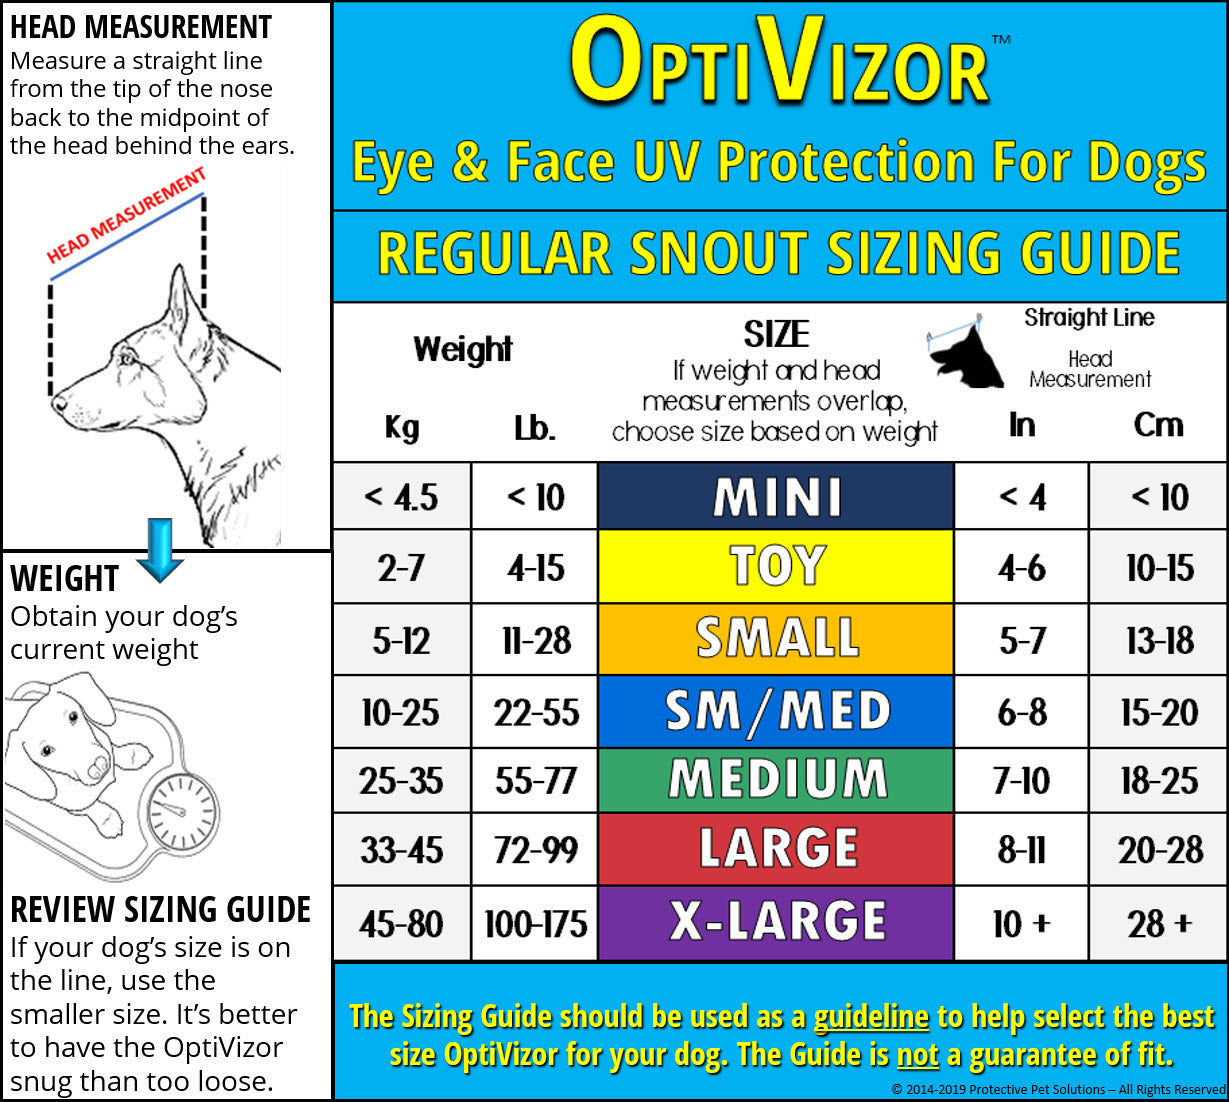 Optivizor Regular Snout Sizing Guide for Dogs and Cats